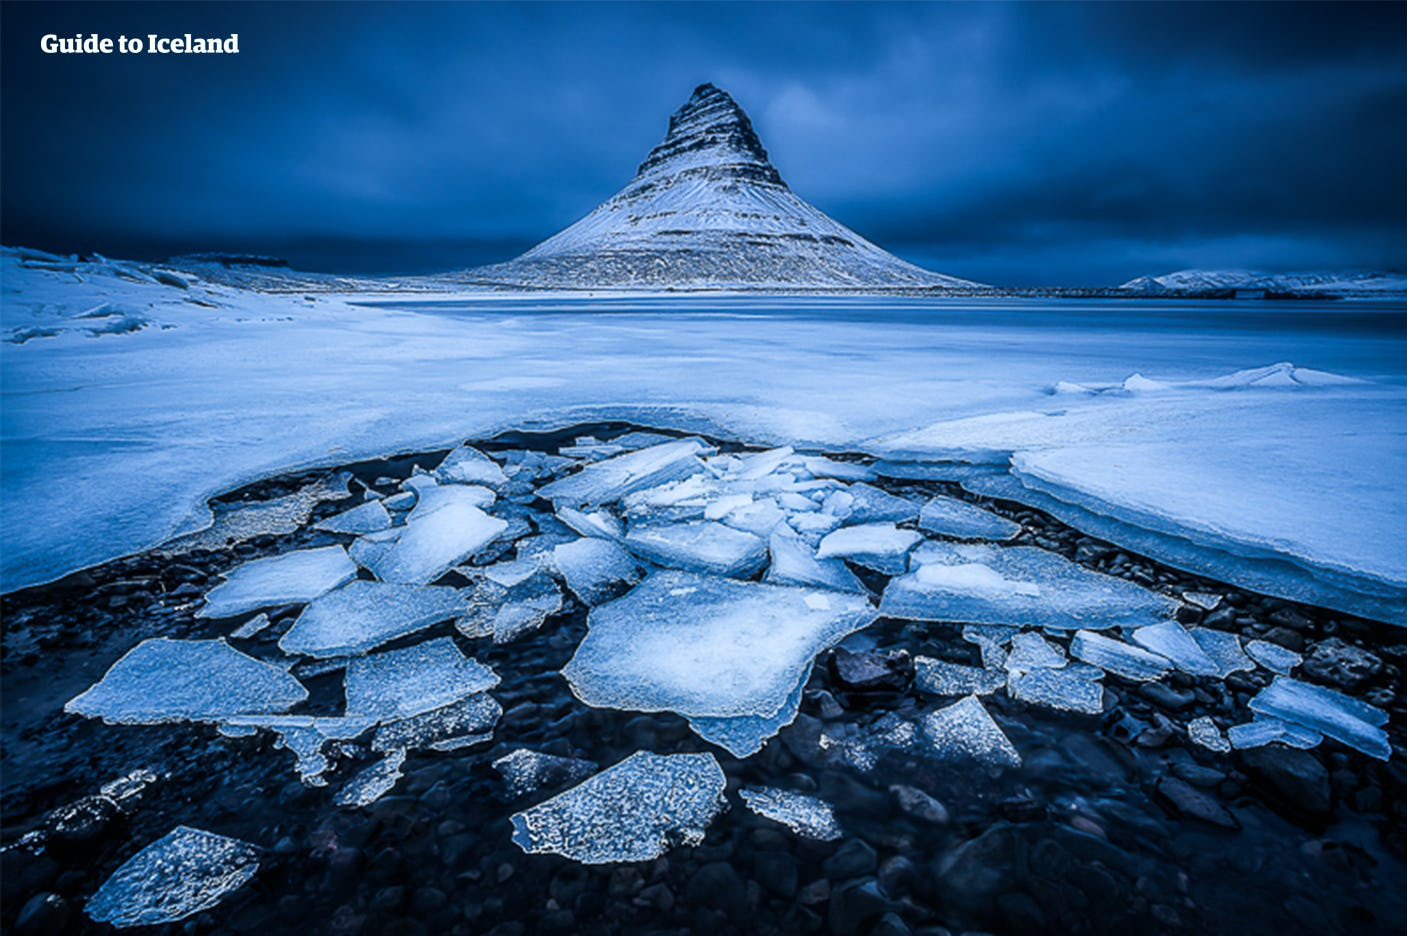 A frosty view of the mountain Kirkjufell on the Snæfellsnes Peninsula.